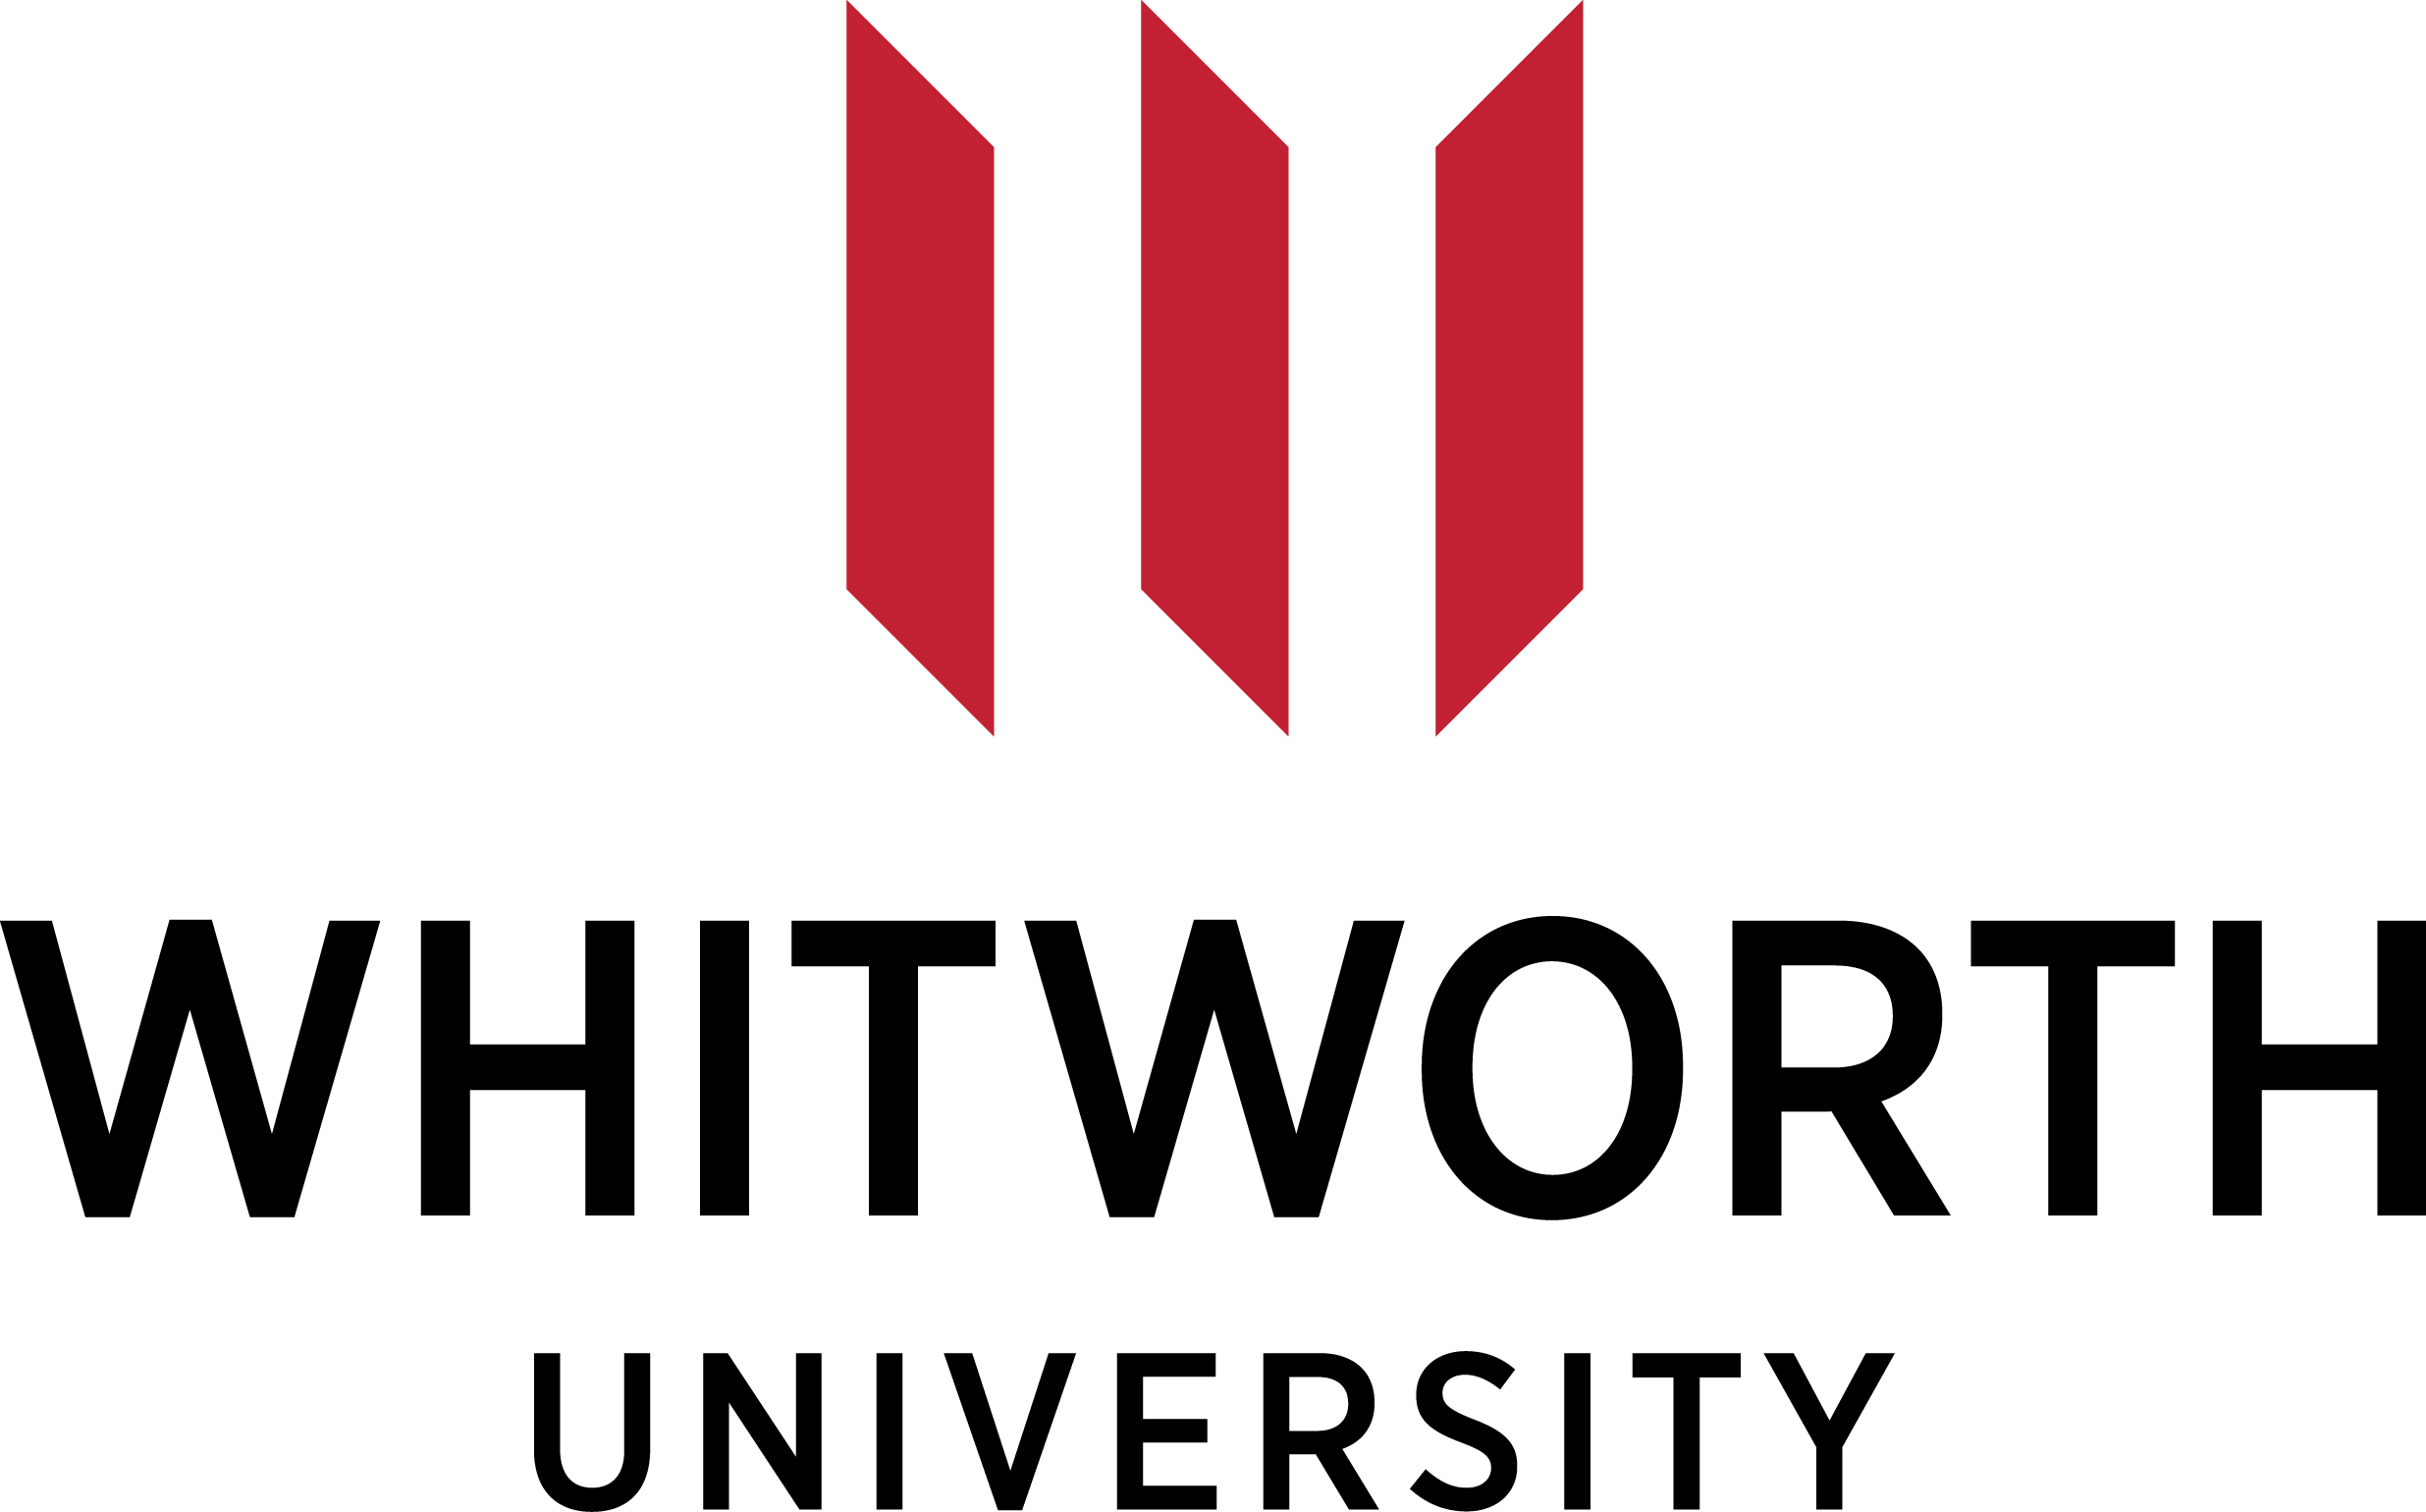 The logo for Whitworth University which is a top choice if you looking for colleges in oregon and washington